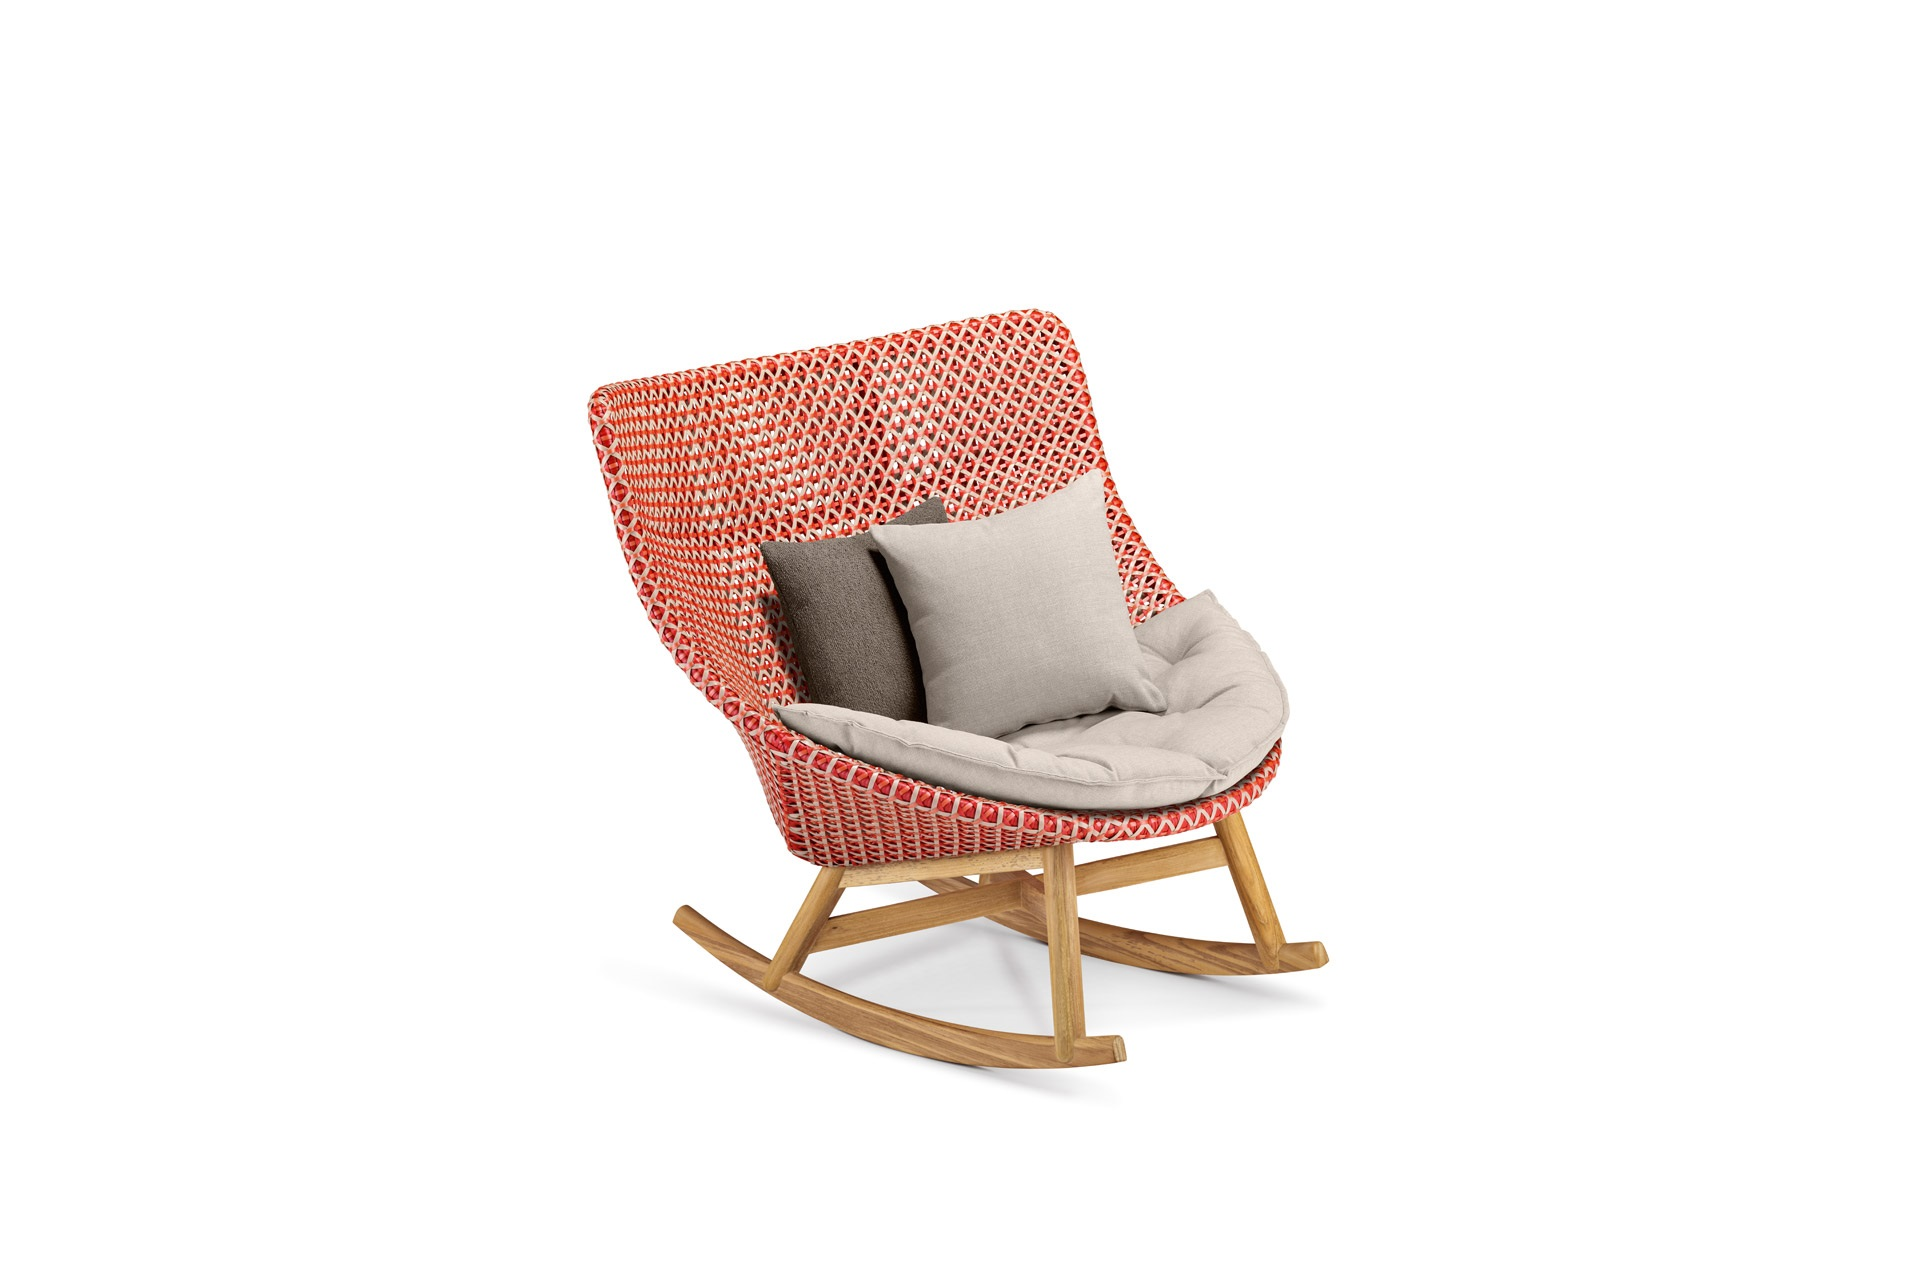 Superb img of ROCKING CHAIR with #9E382D color and 1920x1266 pixels